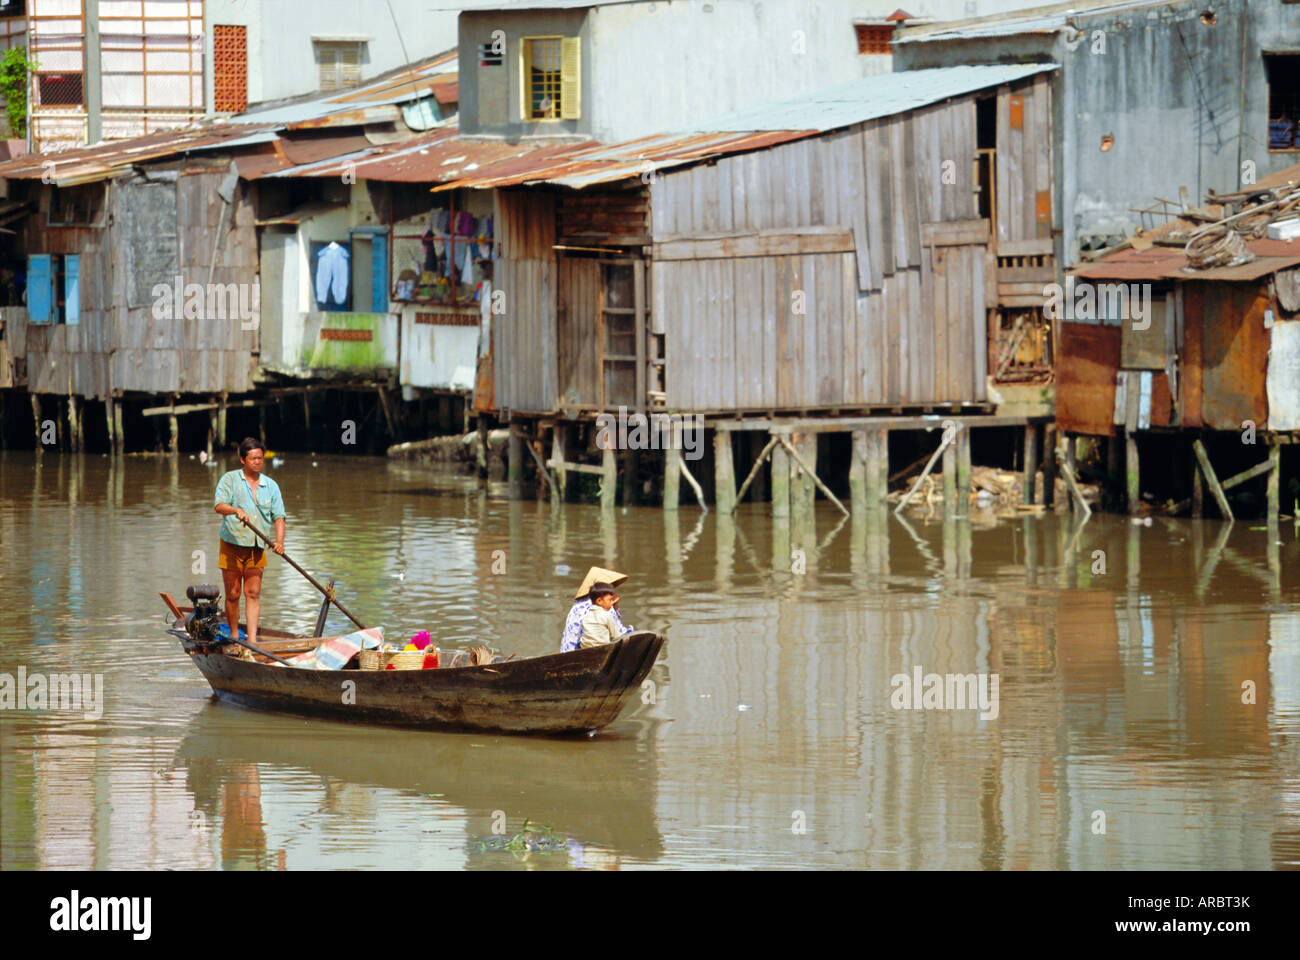 Boat on the Kinh Ben Nghe, a tributary of the Saigon River, Ho Chi Minh City, formerly Saigon, Vietnam, Asia - Stock Image